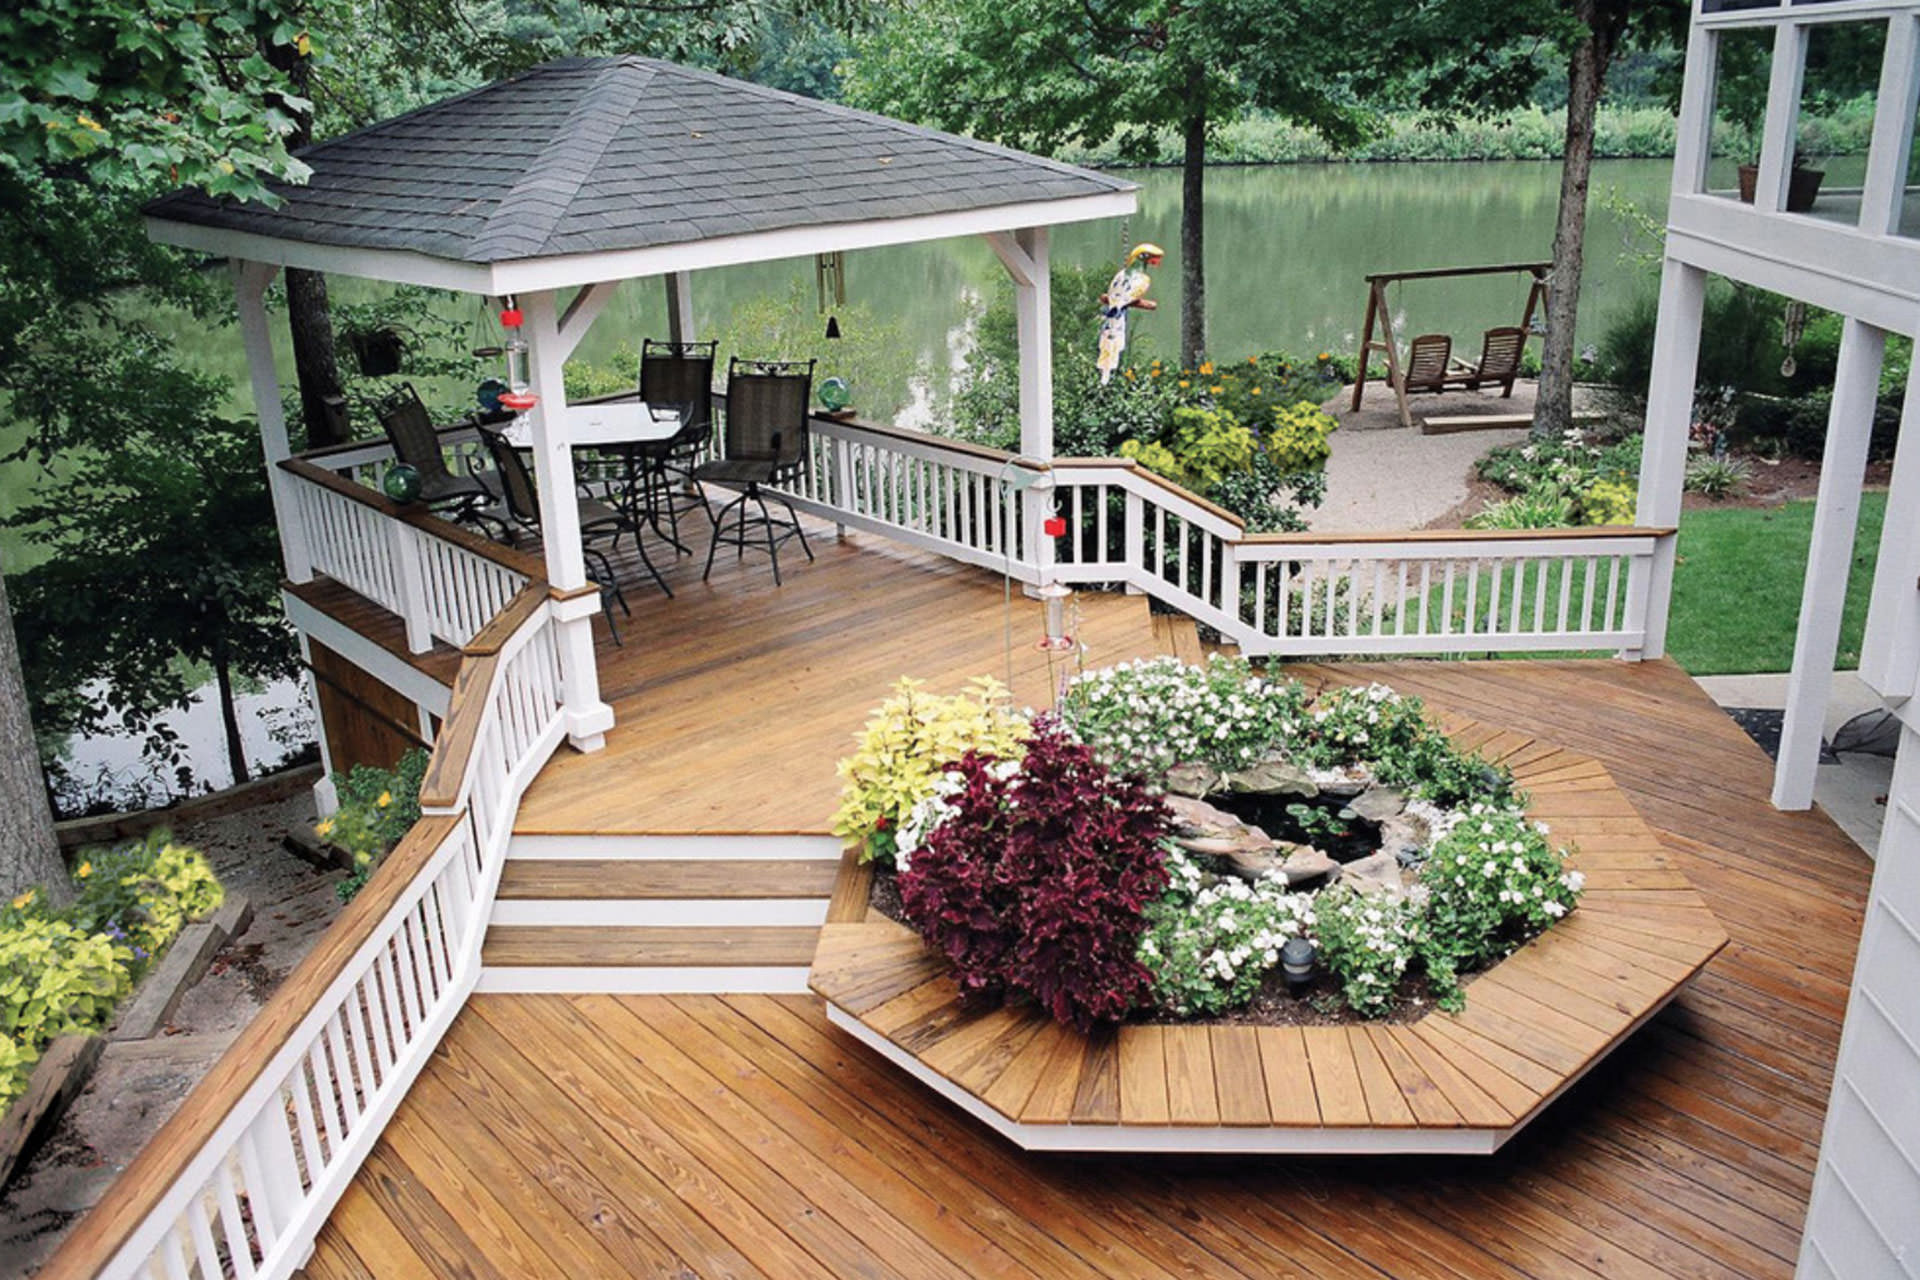 Wood composite or pvc a guide to choosing deck materials for Cost of composite decking vs pressure treated